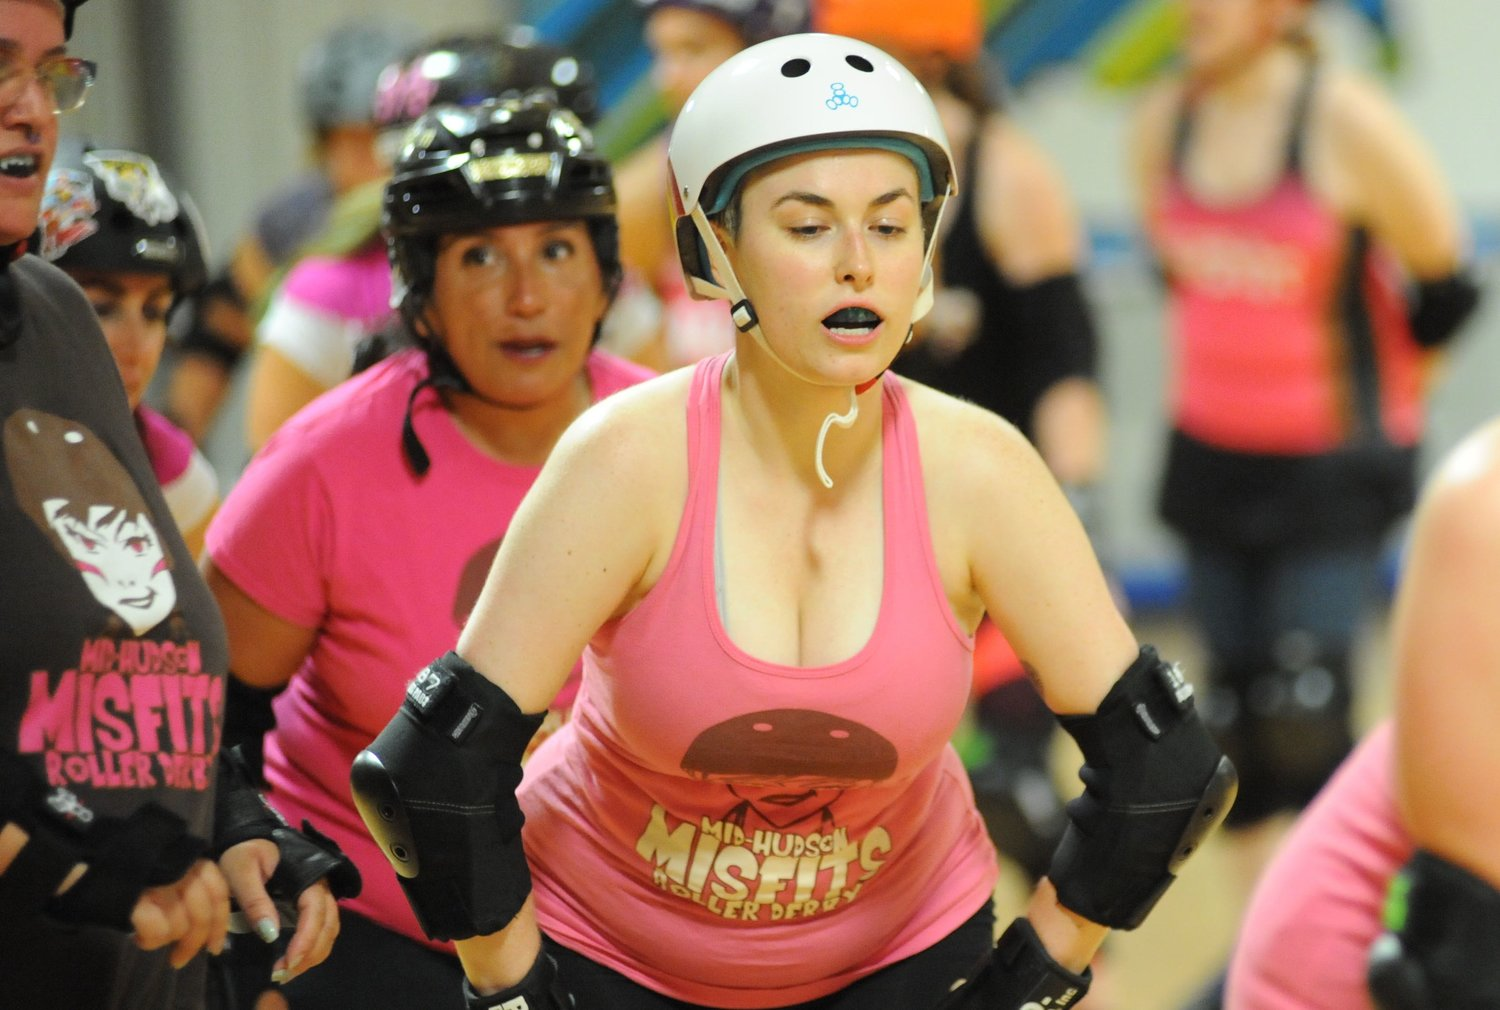 The Misfits: high rollers on skates | The River Reporter